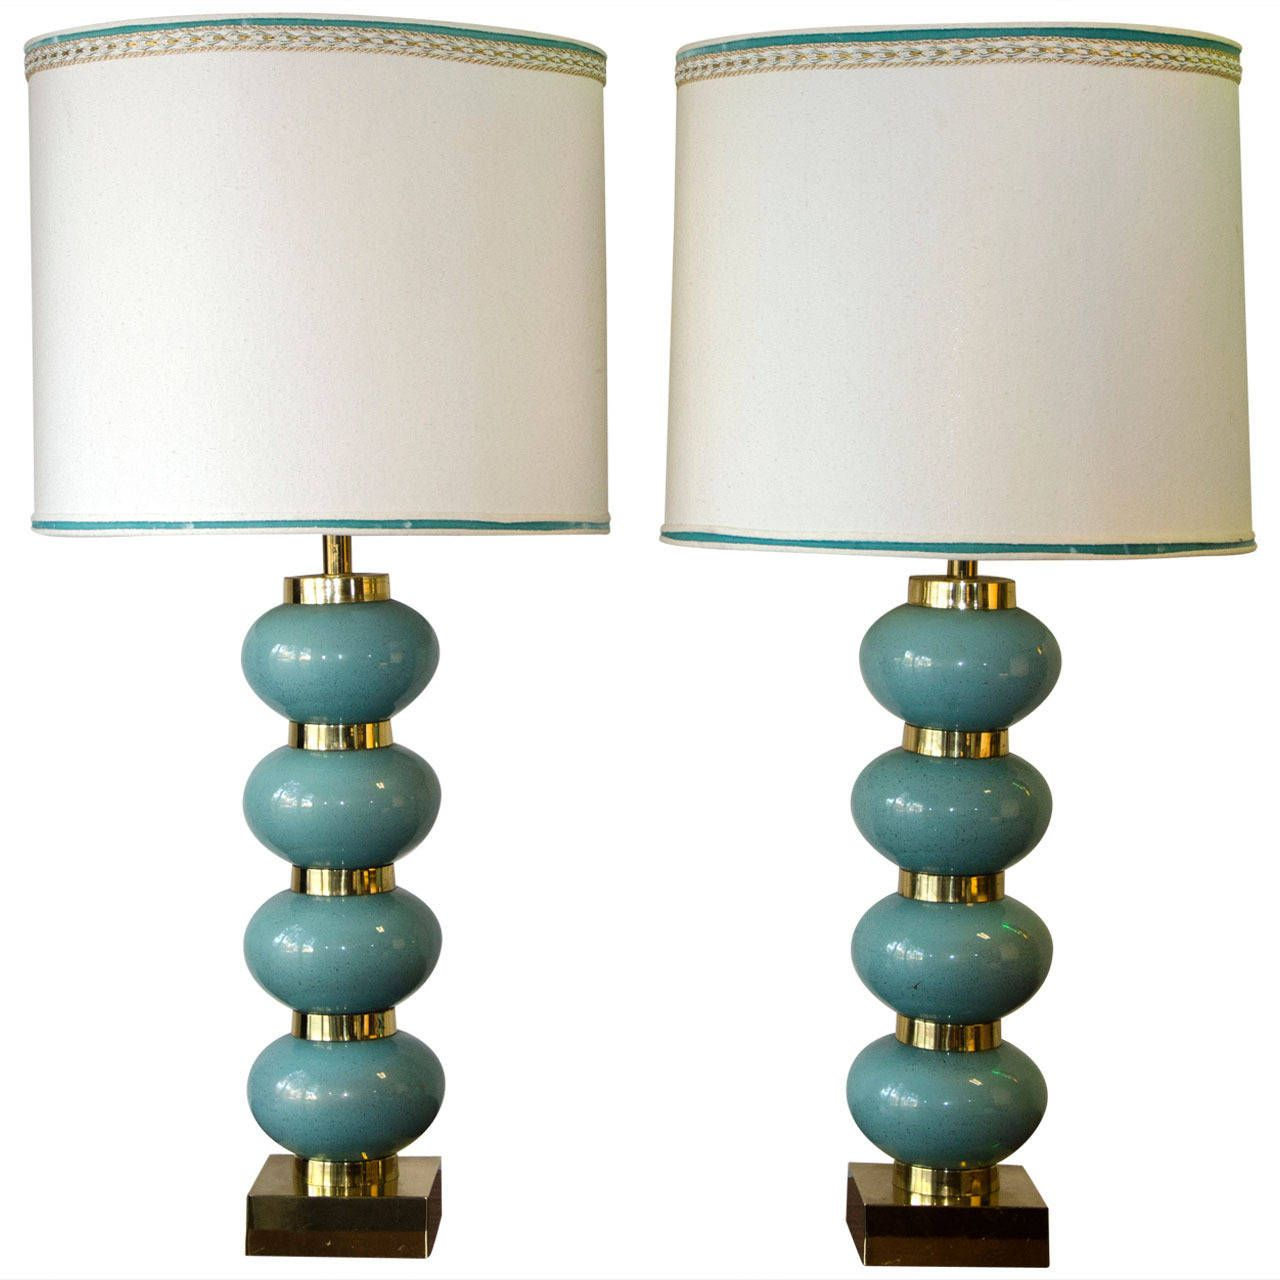 Pair of Mid Century Lamps in Glass, Hollywood Regency | From a unique collection of antique and modern table lamps at https://www.1stdibs.com/furniture/lighting/table-lamps/